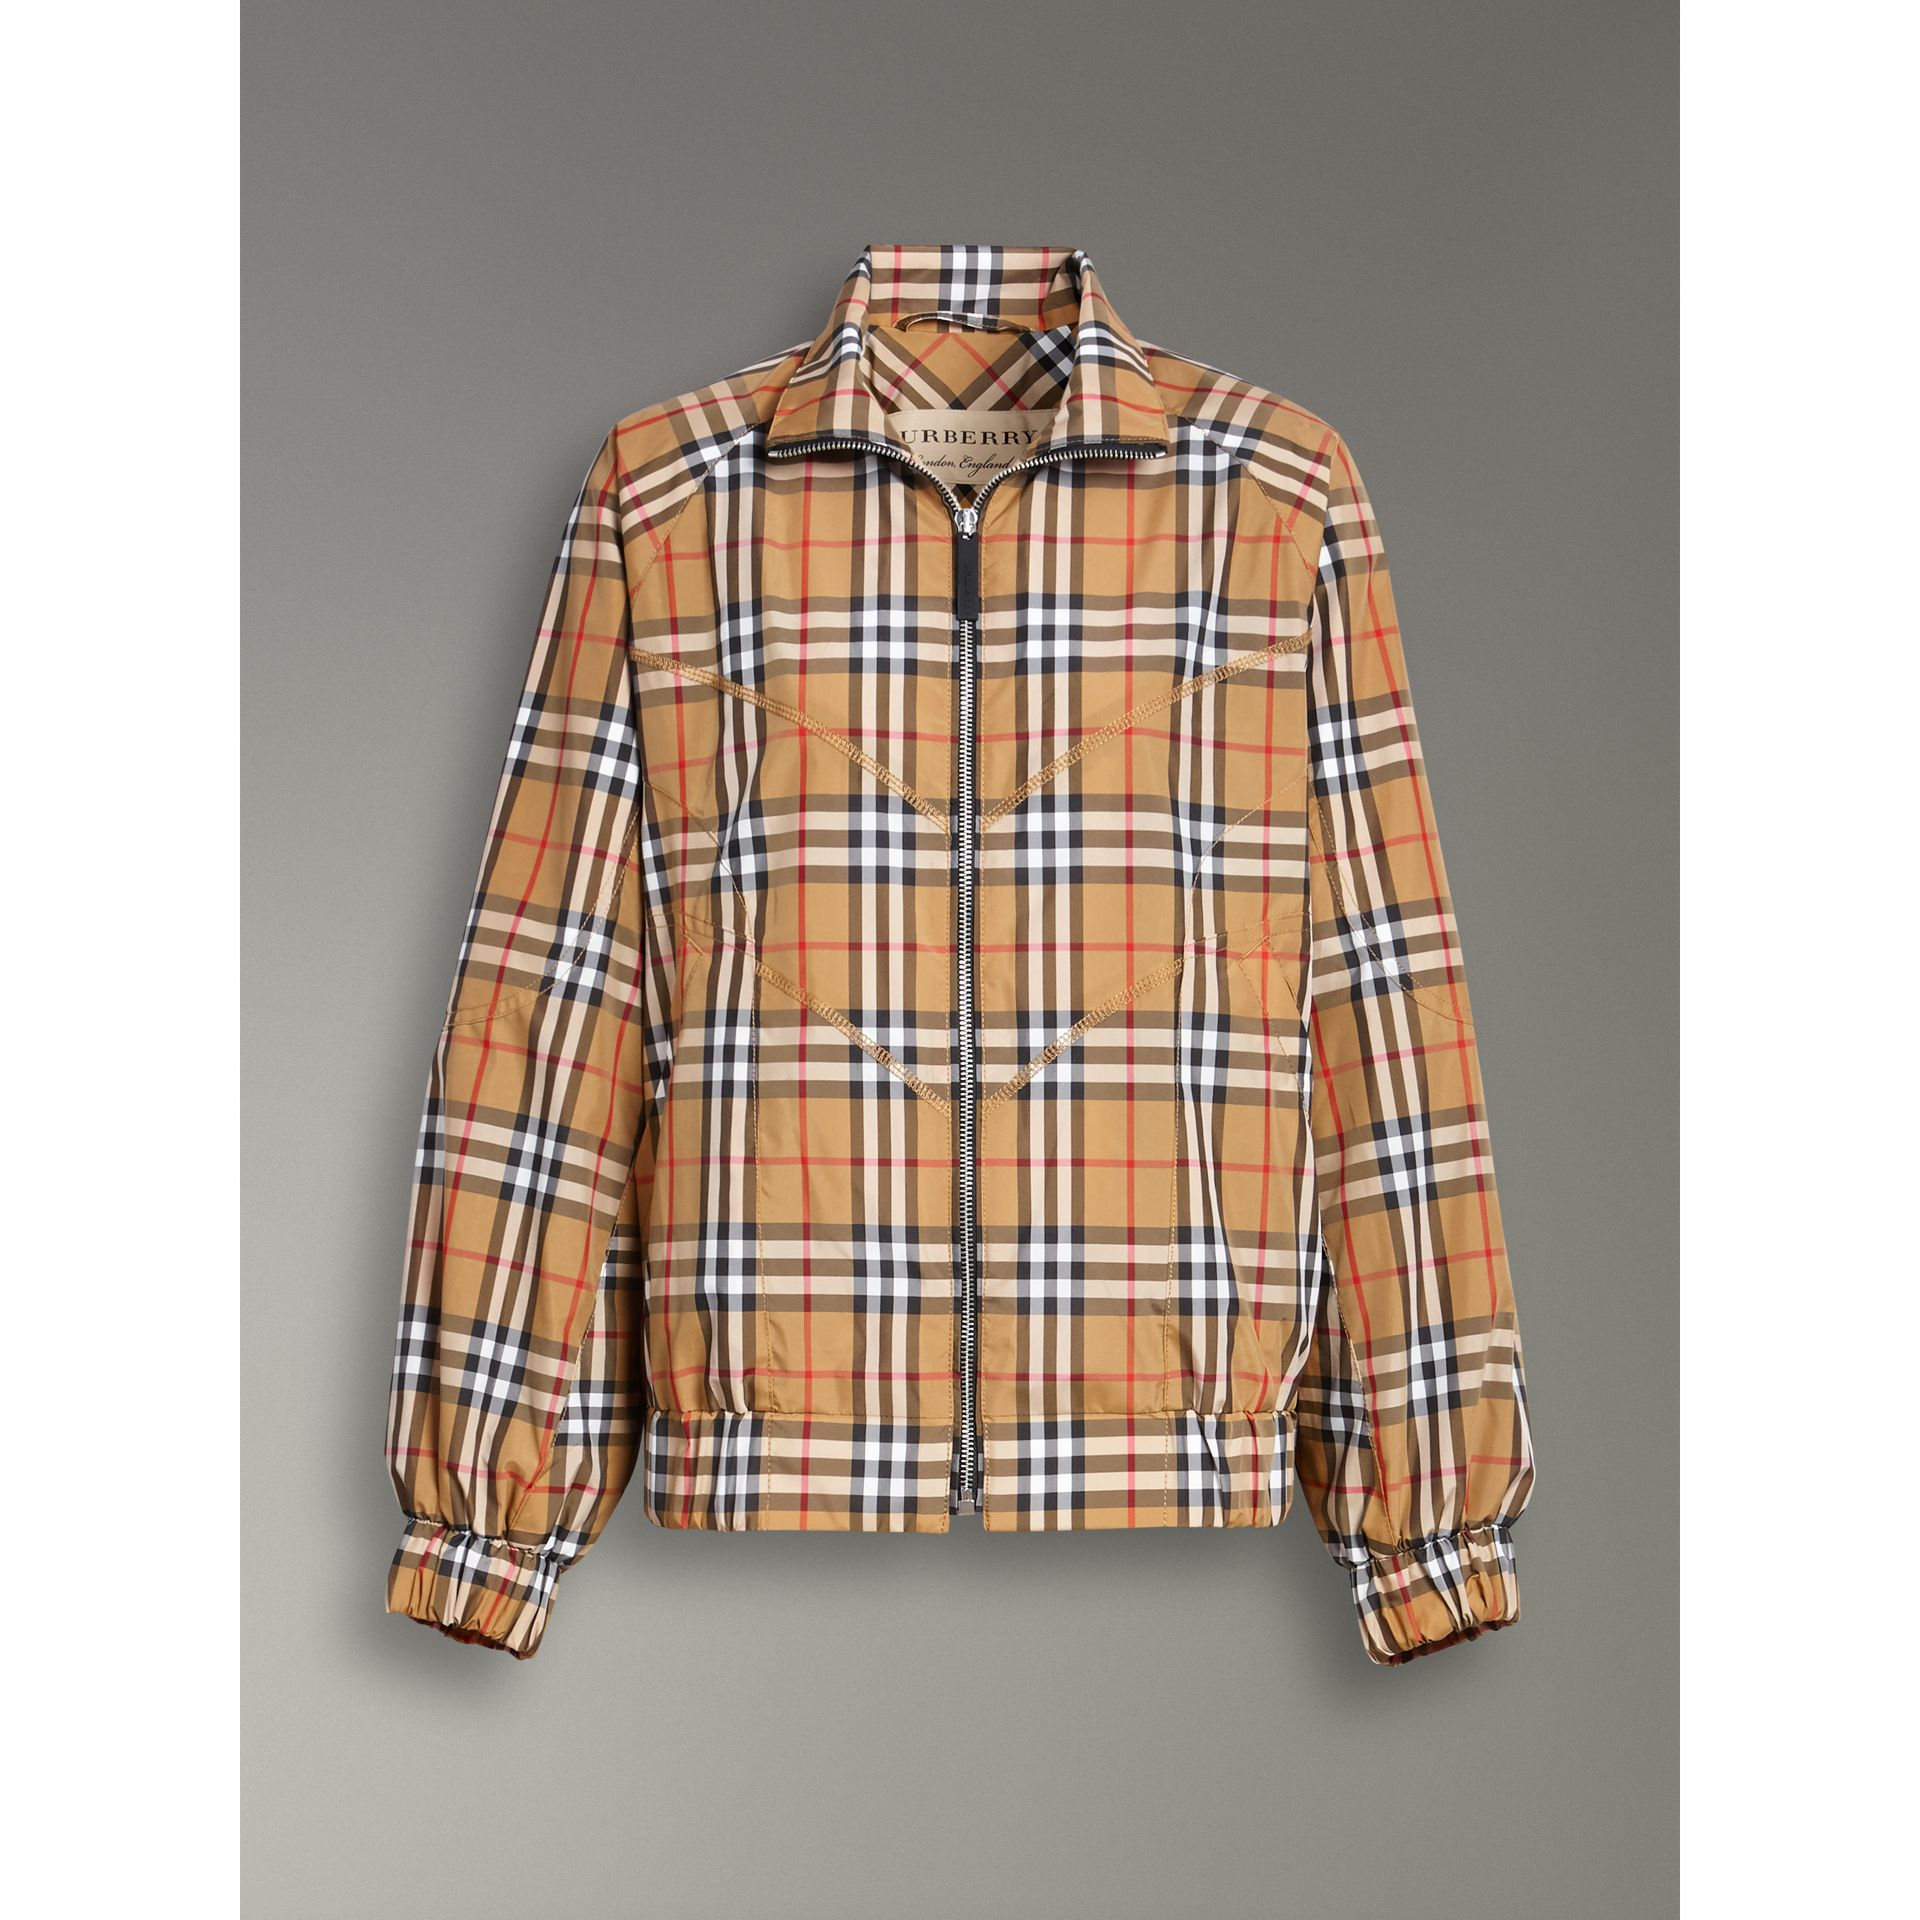 Veste Harrington à motif Vintage check et surpiqûres (Jaune Antique) - Femme | Burberry Canada - photo de la galerie 3